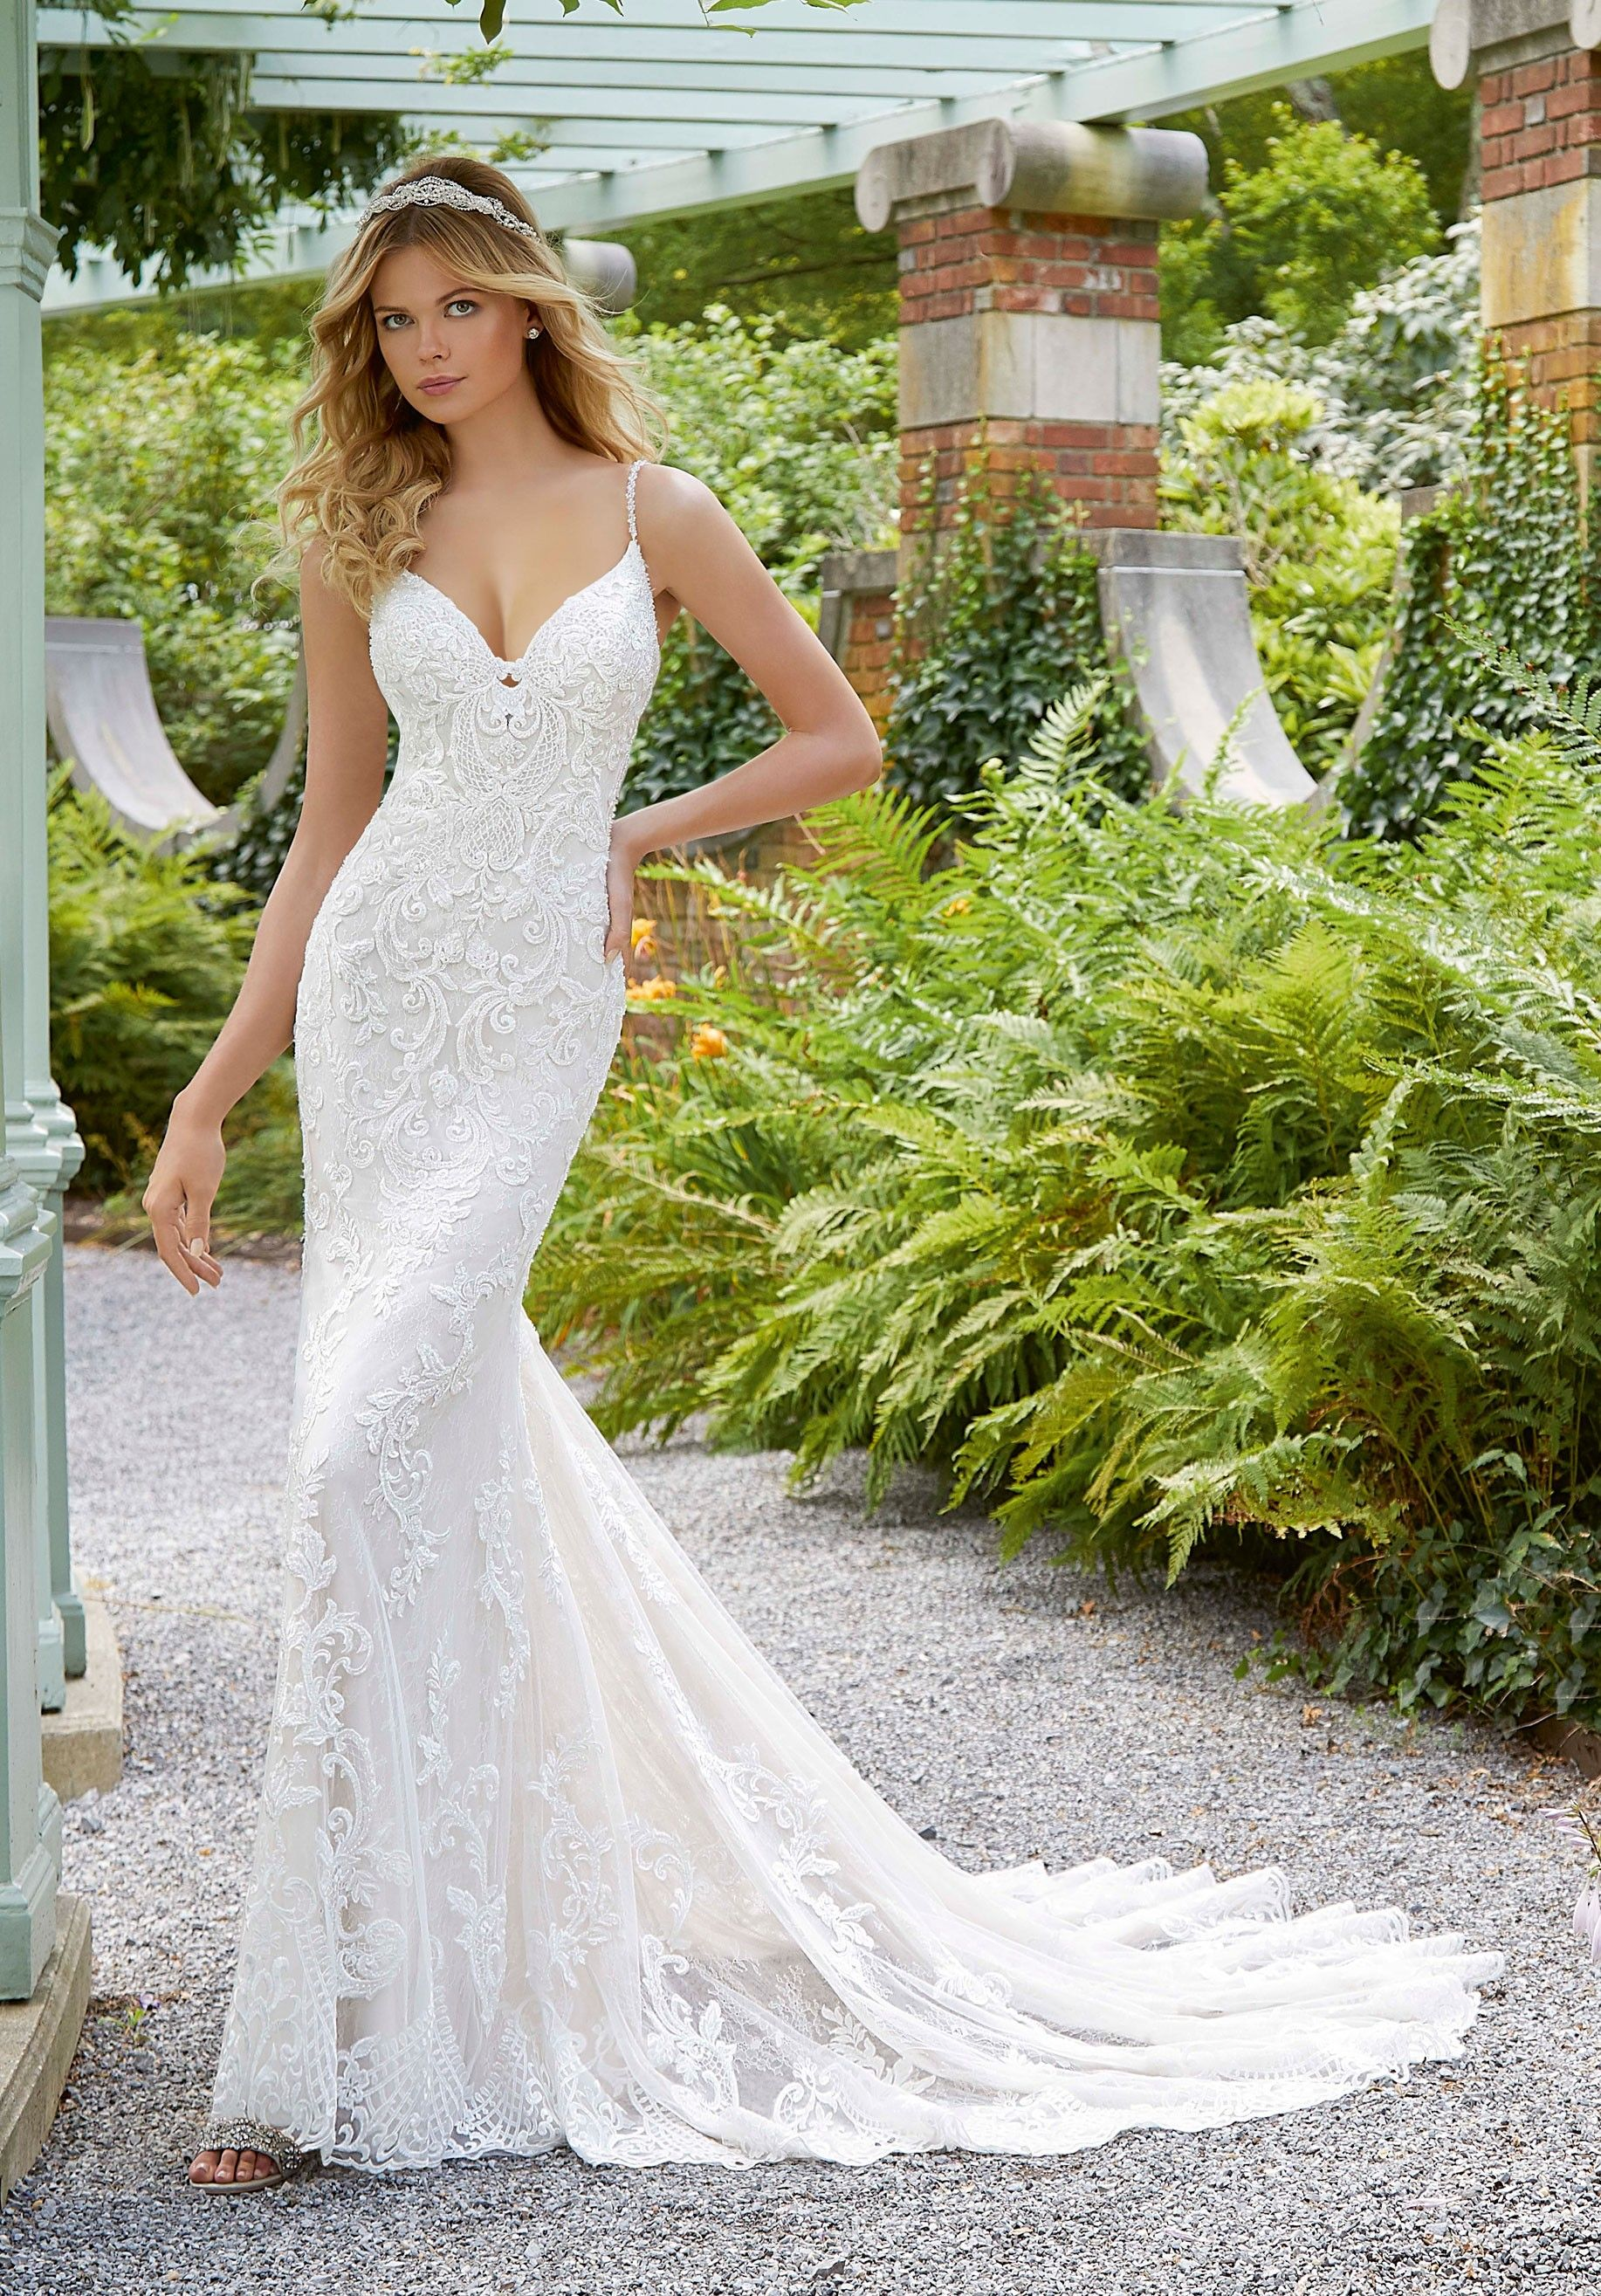 Mori Lee Wedding Dresses Style 2033 Perdita 2033 1 449 00